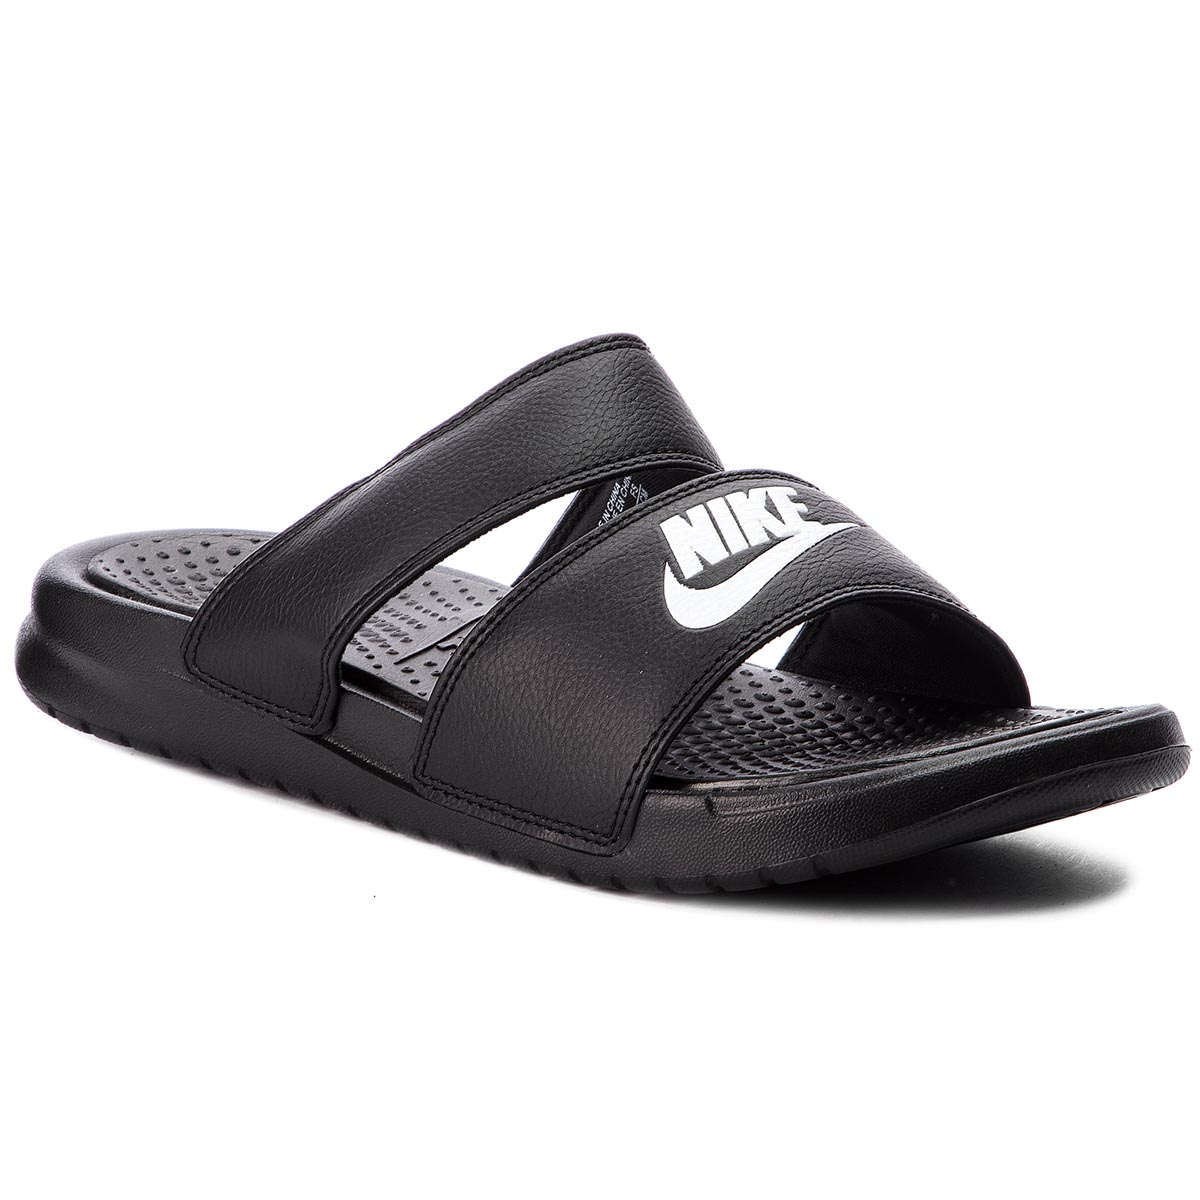 Șlapi NIKE - Benassi Duo Ultra Slide 819717 010 Black/White